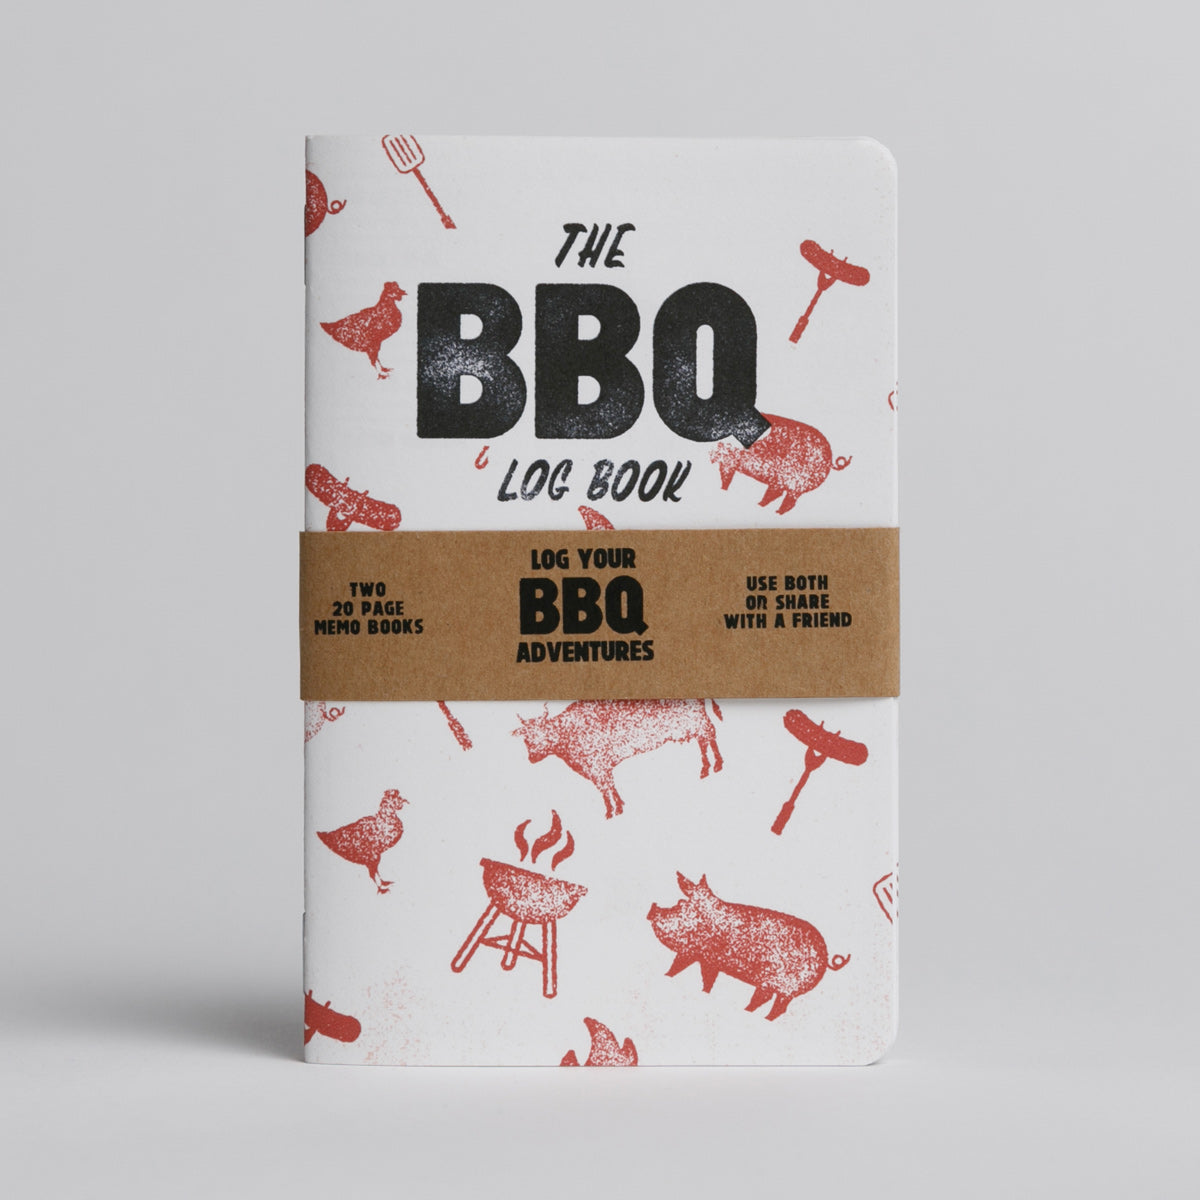 BBQ Log Book - Two 20-page books